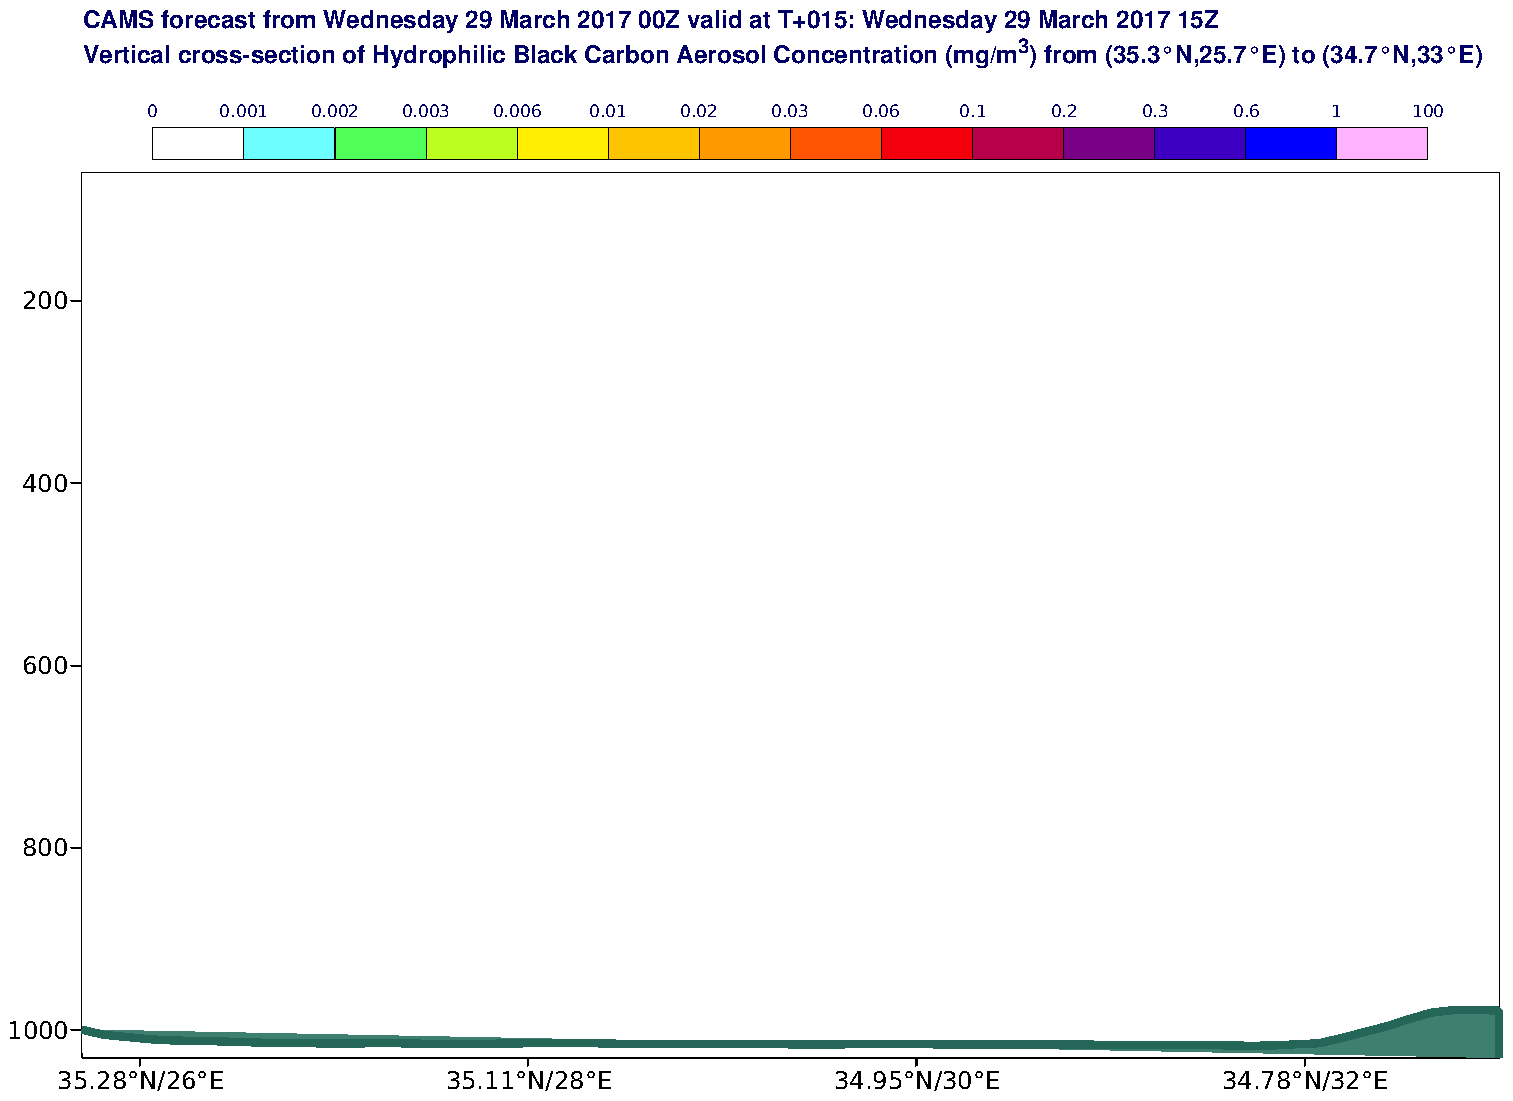 Vertical cross-section of Hydrophilic Black Carbon Aerosol Concentration (mg/m3) valid at T15 - 2017-03-29 15:00